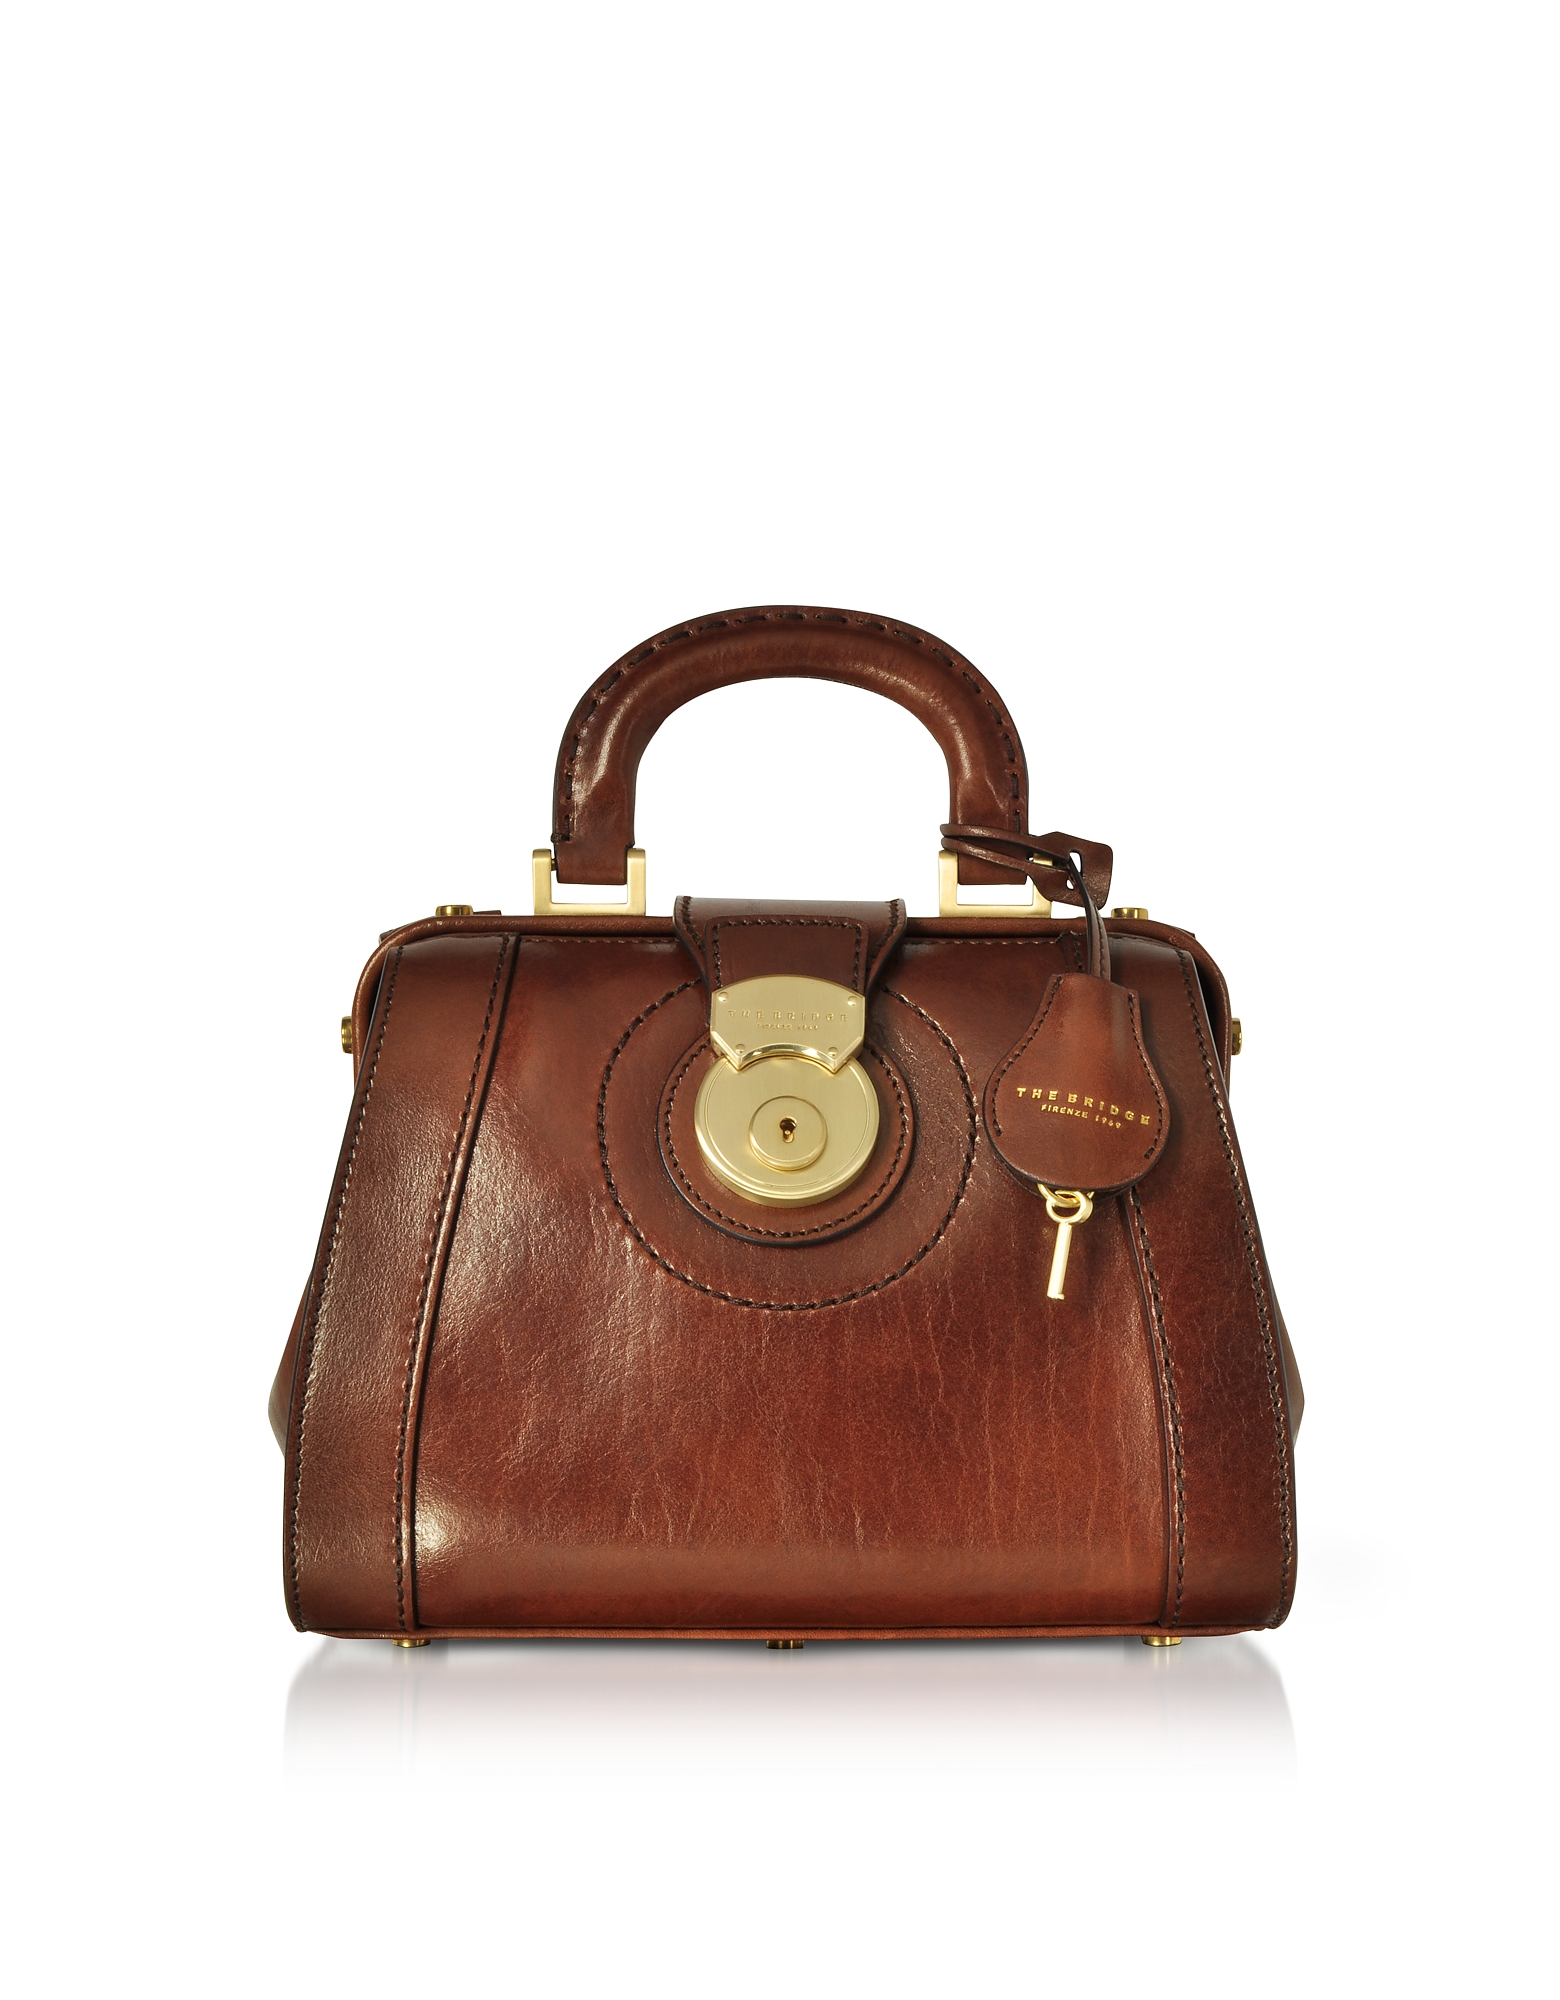 THE BRIDGE Rufina Small Leather Doctor Bag in Brown